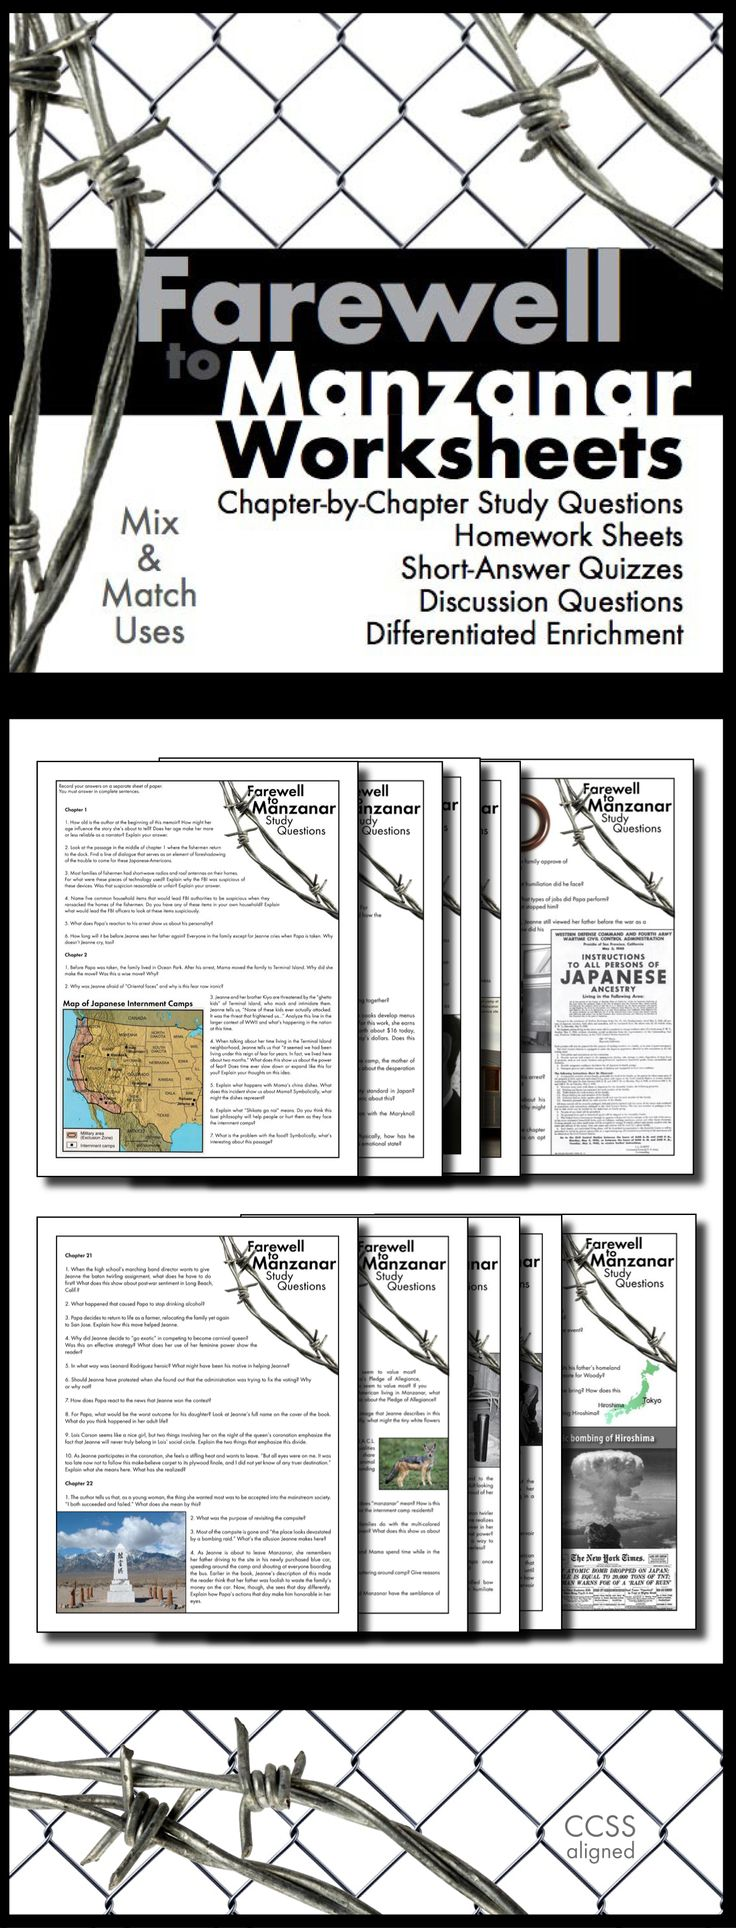 Printables Farewell To Manzanar Worksheets 1000 images about farewell to manzanar on pinterest primary japanese internment worksheets hw discussion for memoir